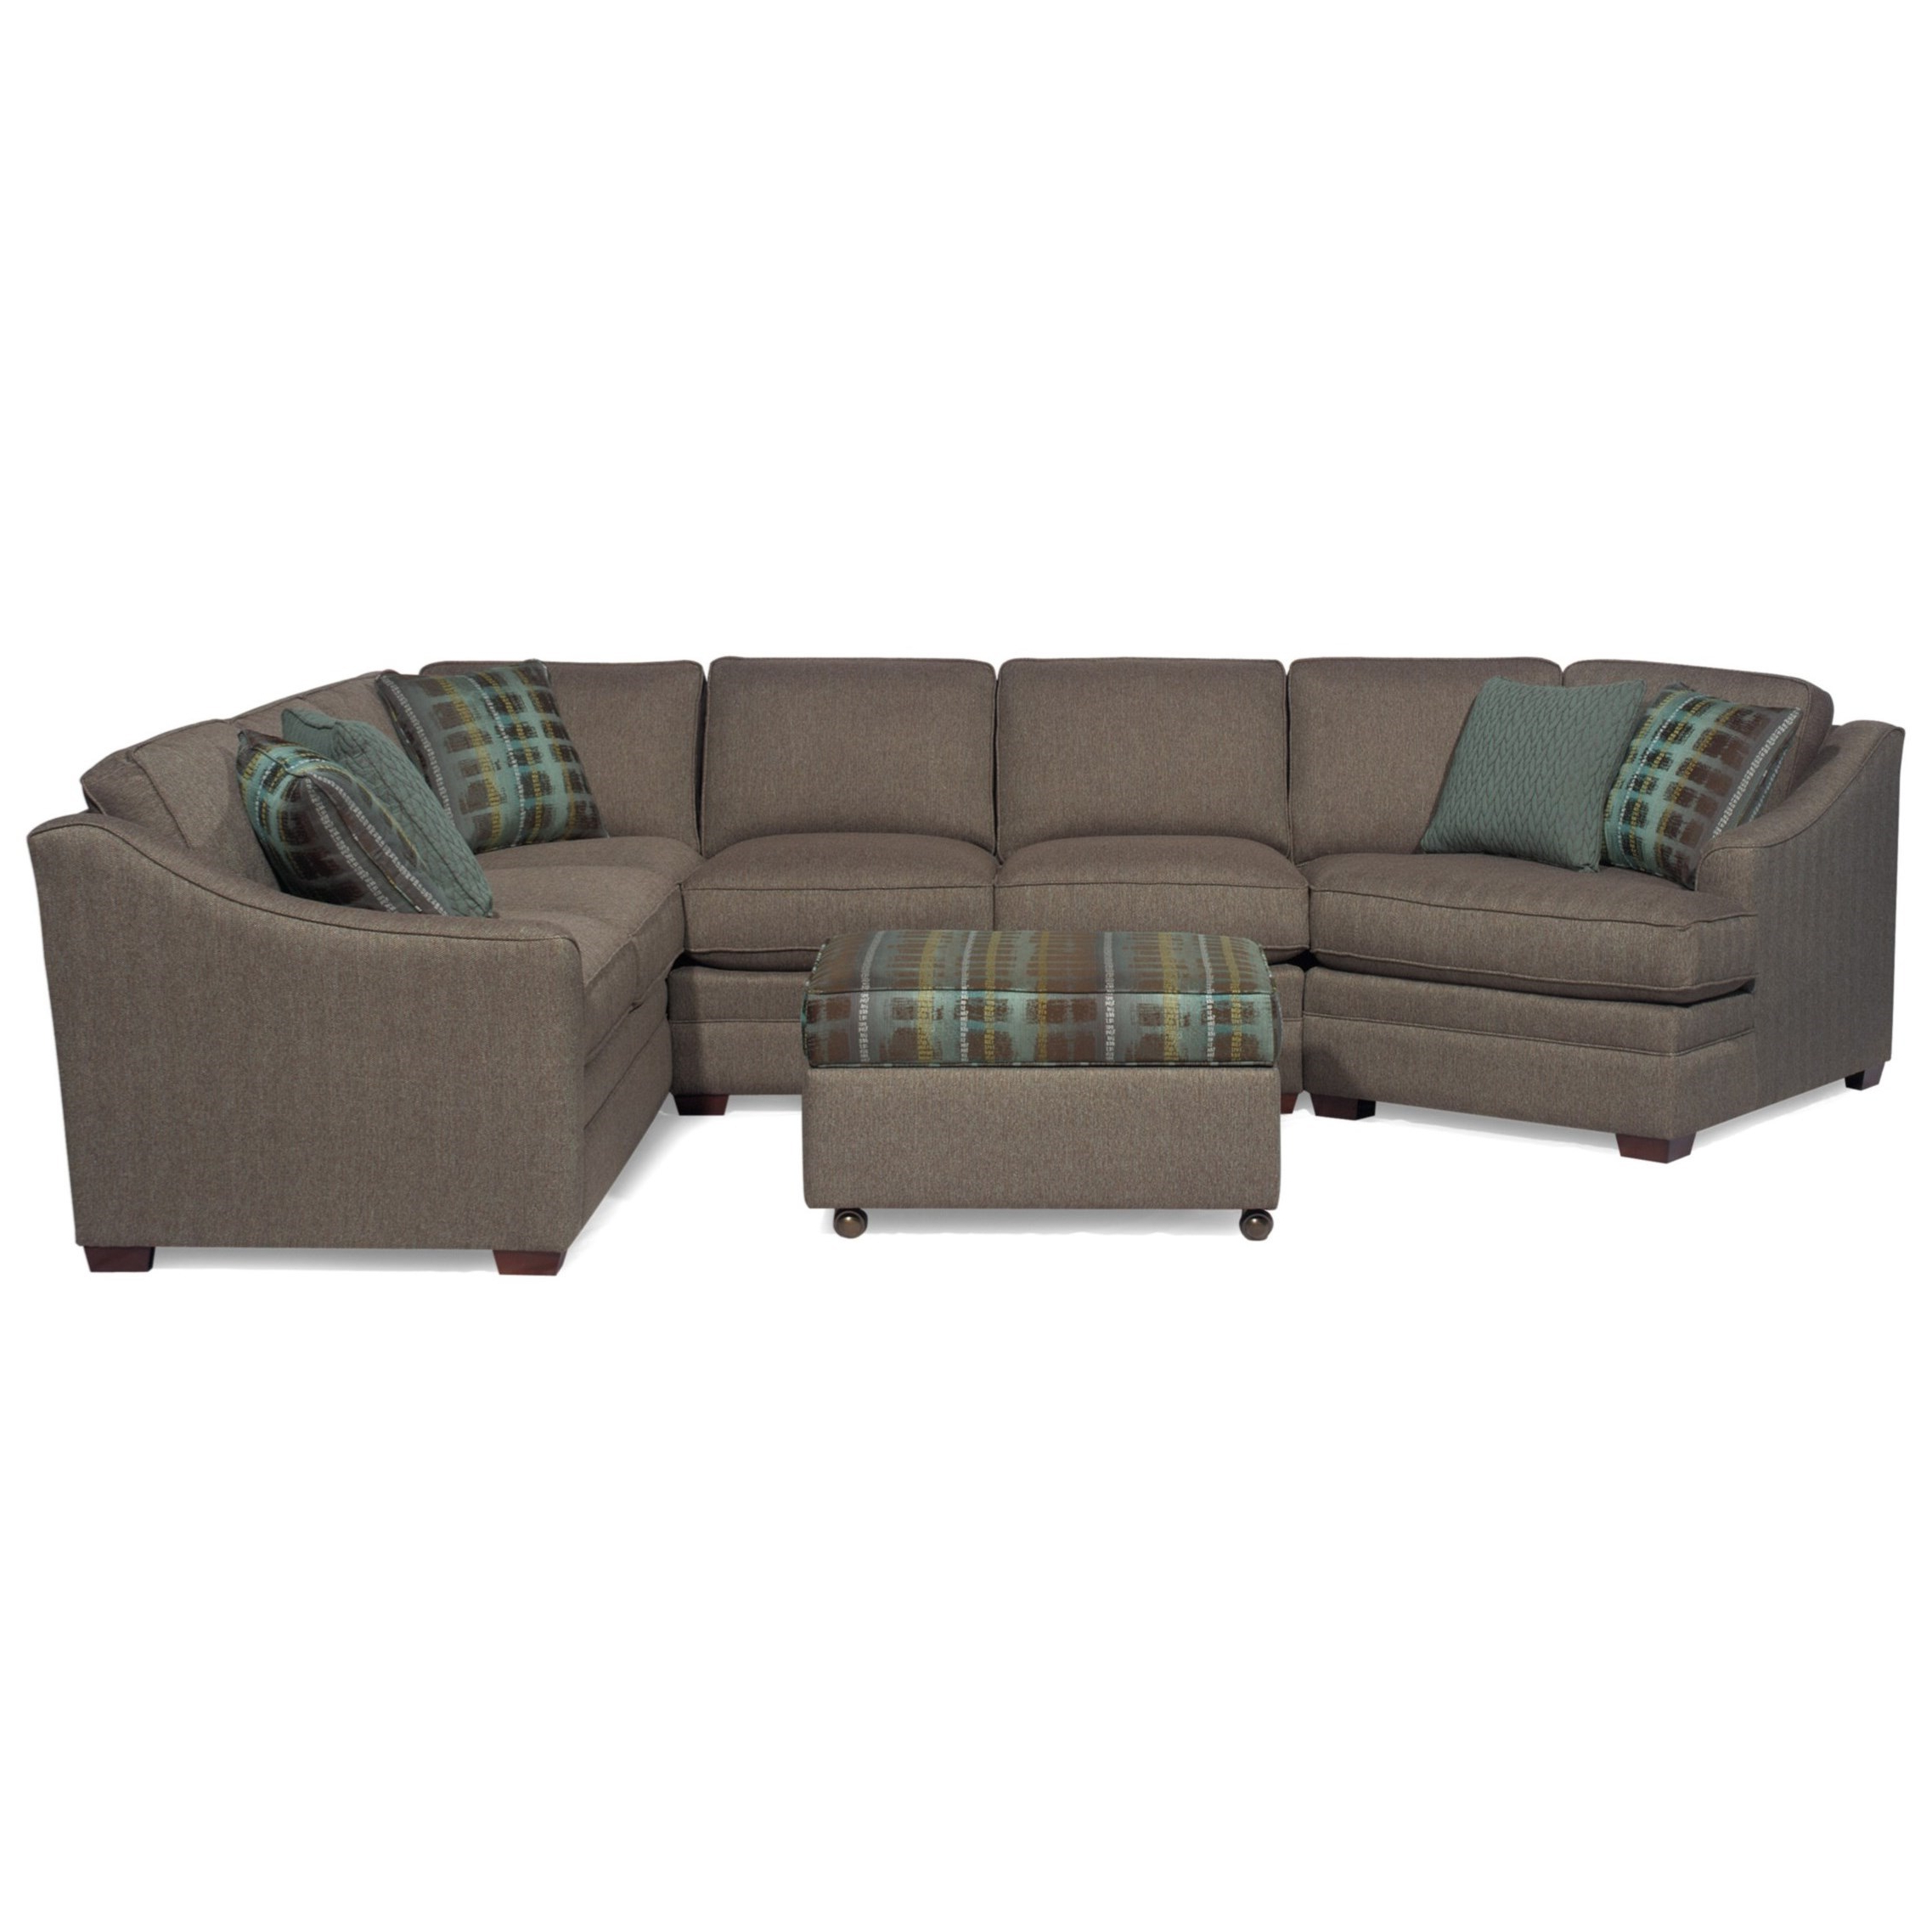 Hickorycraft F9 Custom Collection <b>customizable</b> 3 Piece In Recent Tatum Dark Grey 2 Piece Sectionals With Laf Chaise (View 7 of 20)